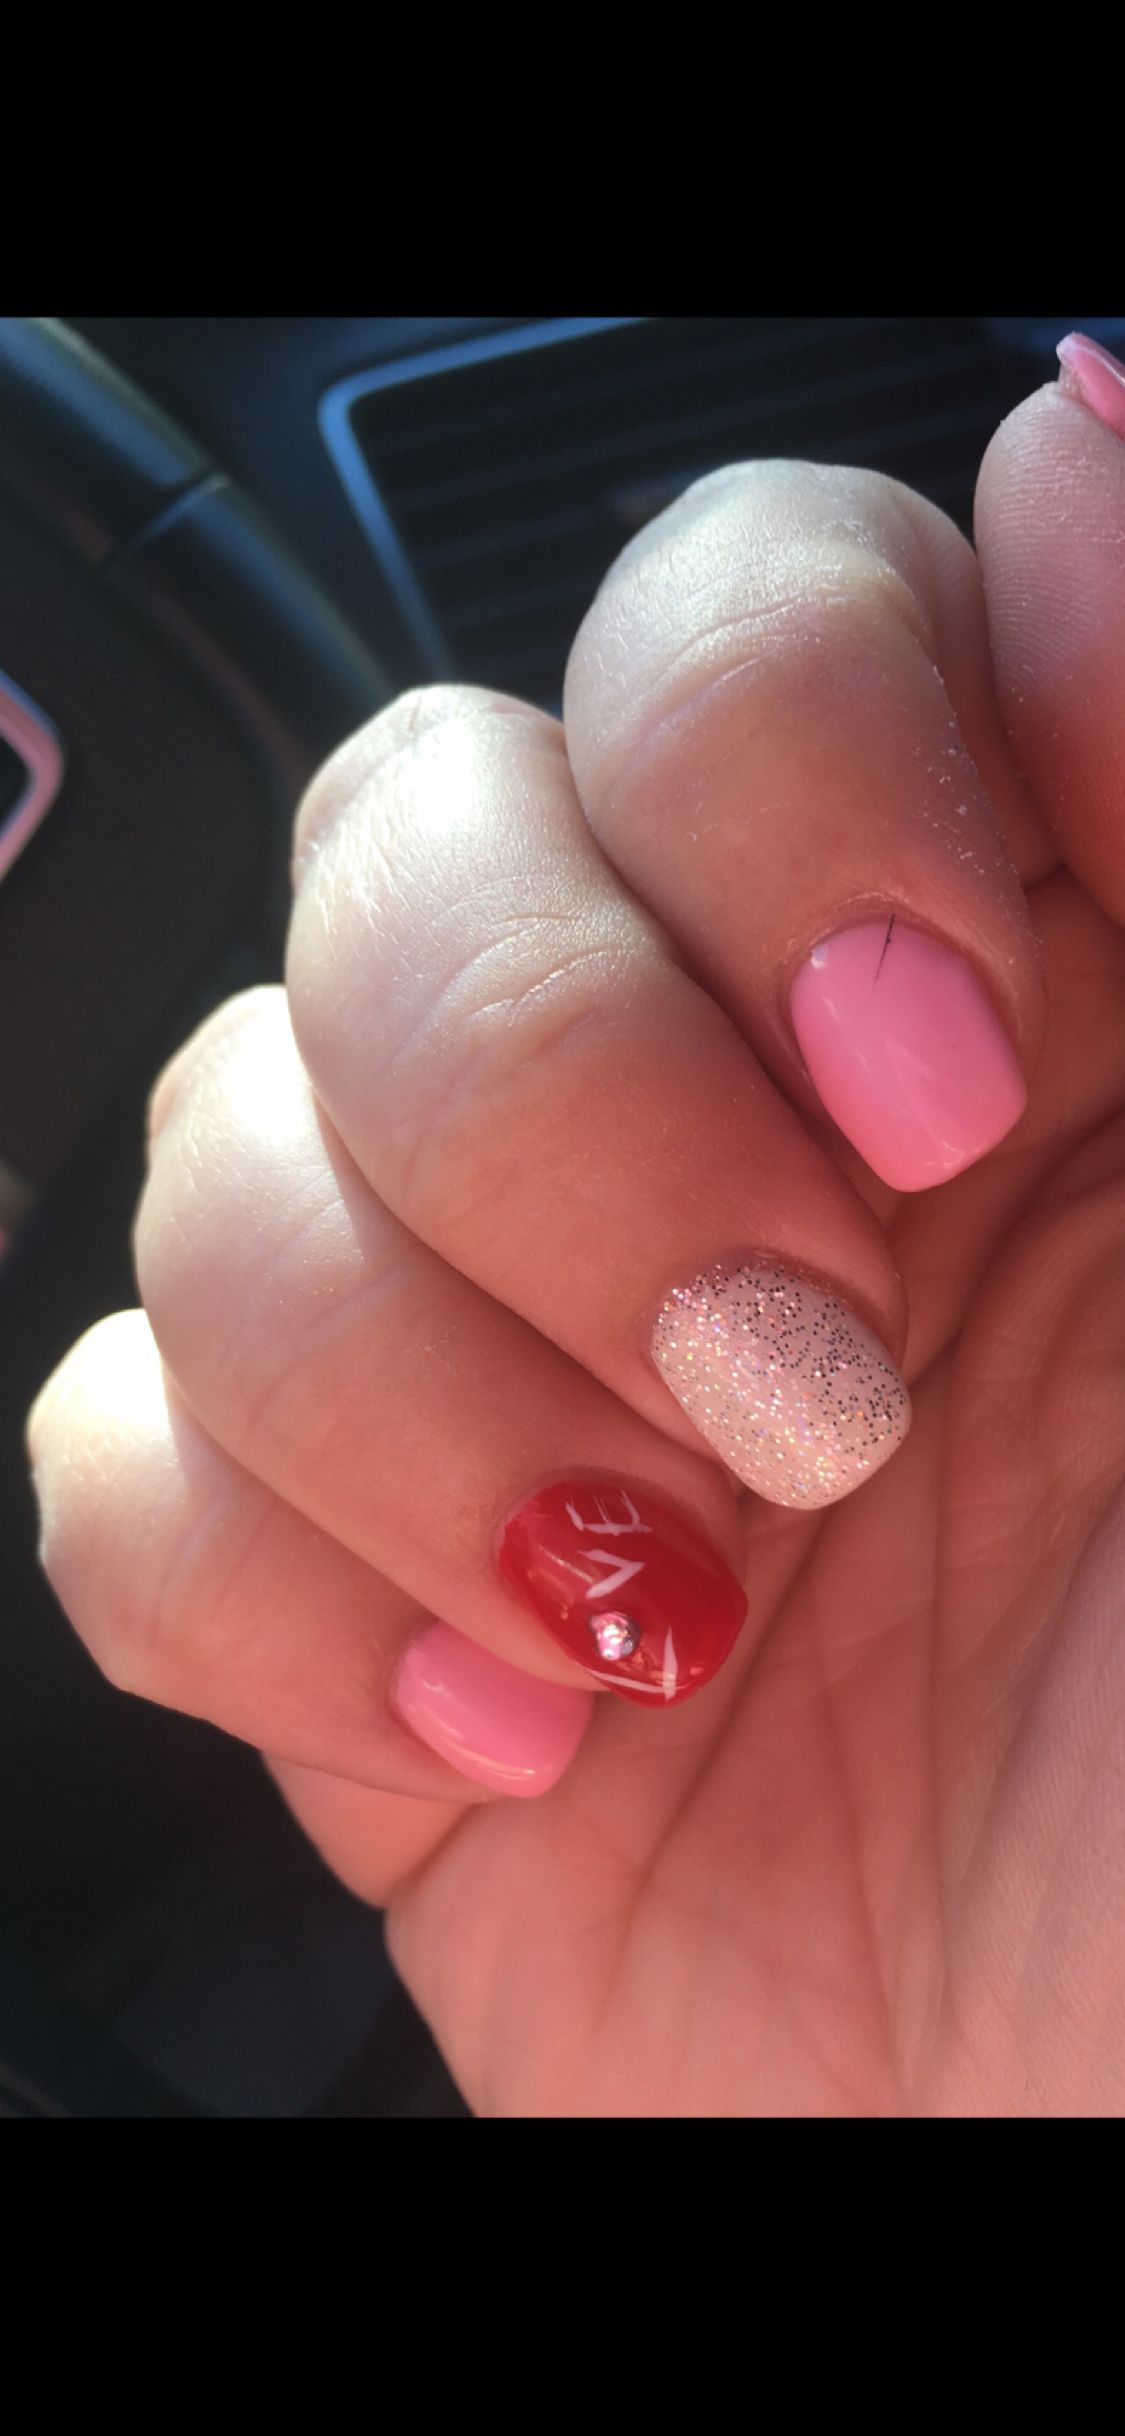 Pin by Melanie Ramento on Nails By Nanette   Nails, Square